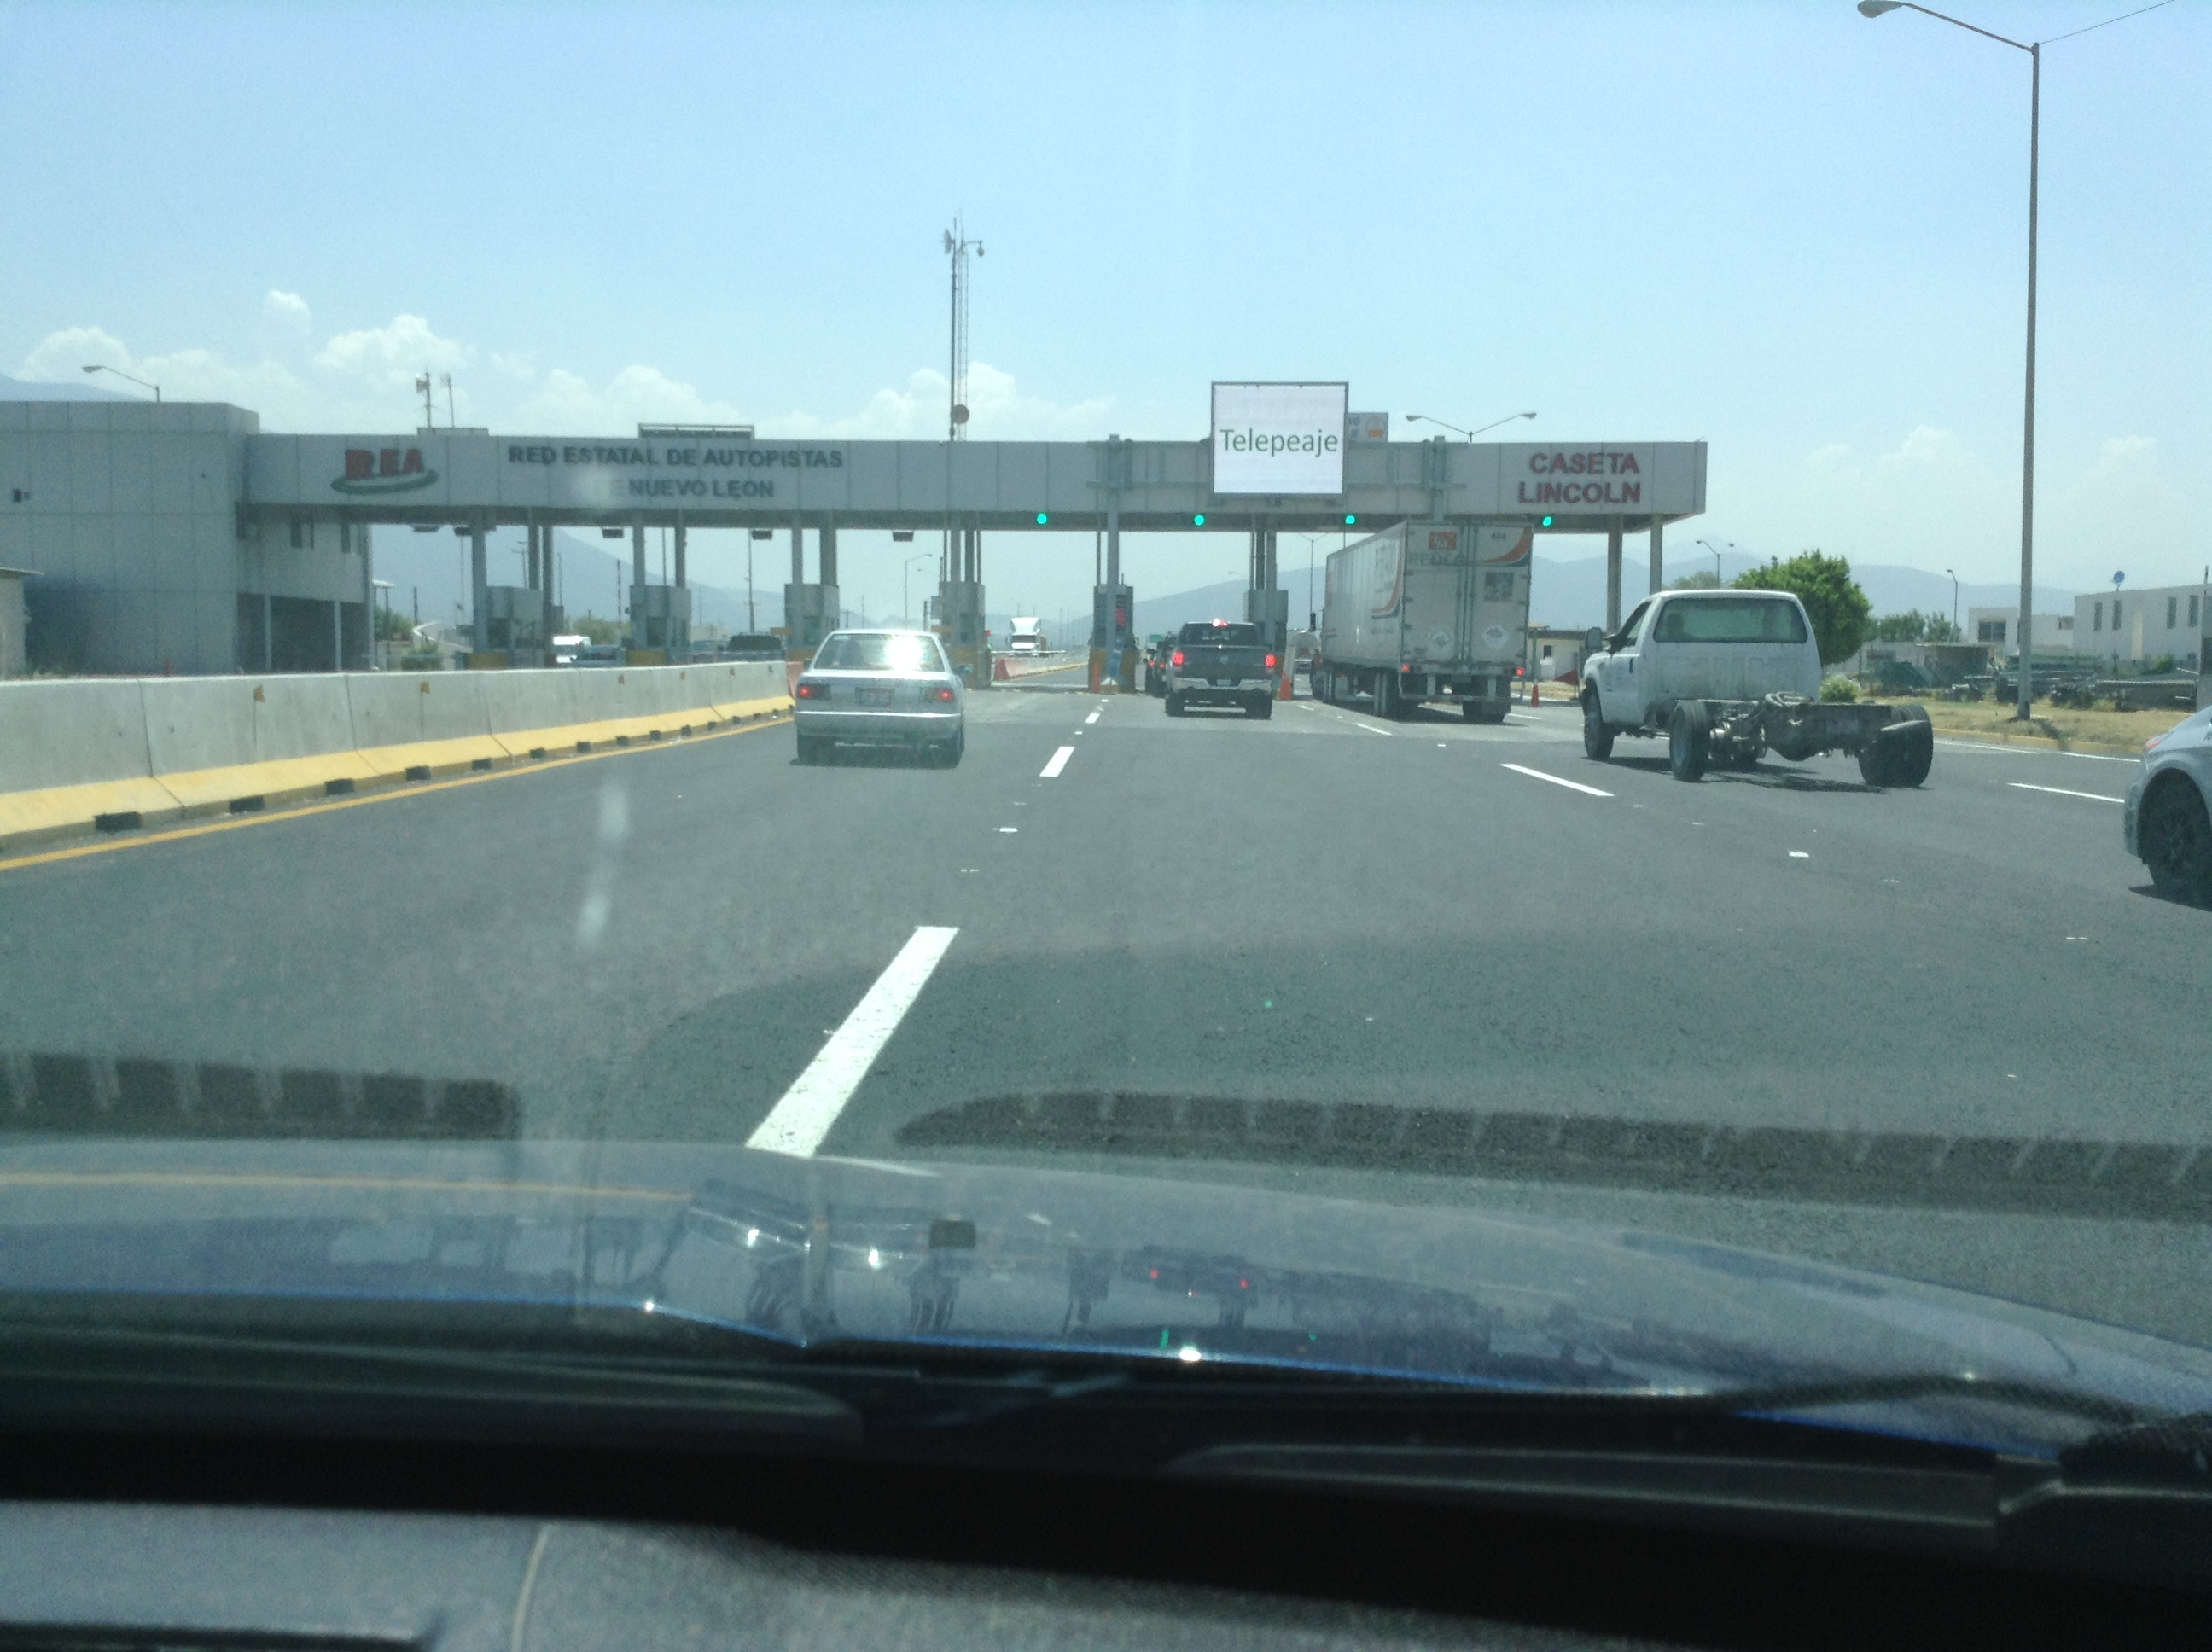 First of our Toll Road Encounters!